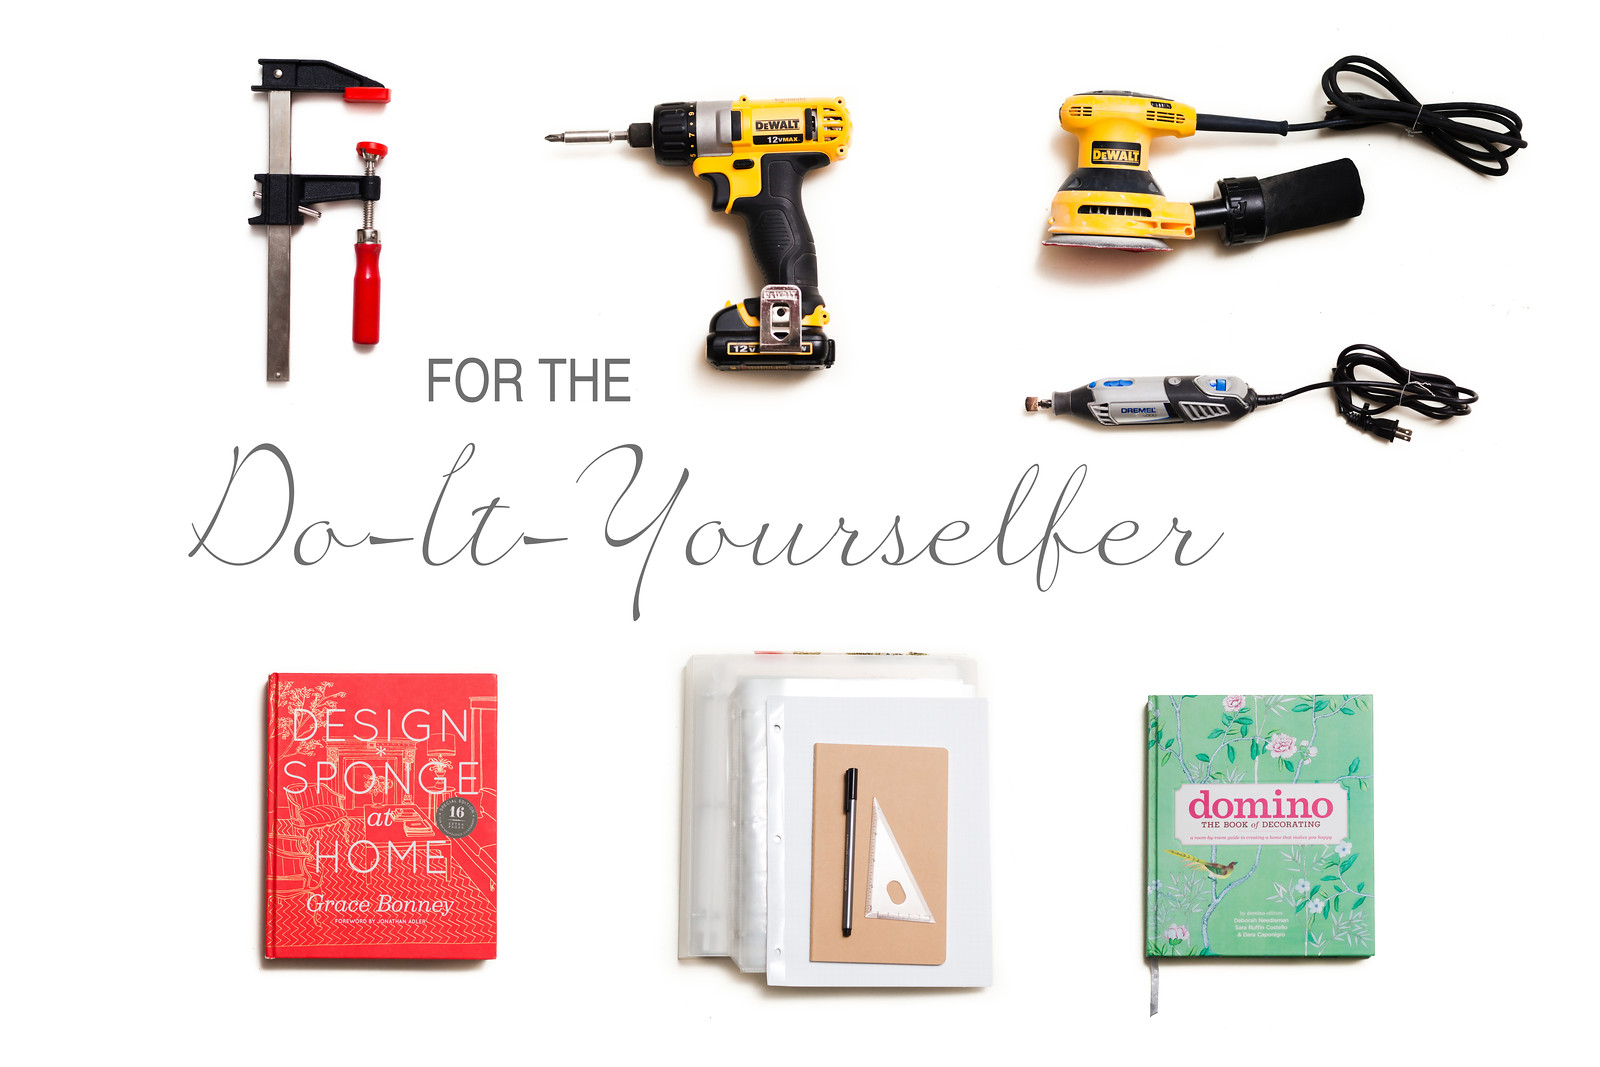 Gifts for the Do-It-Yourselfer